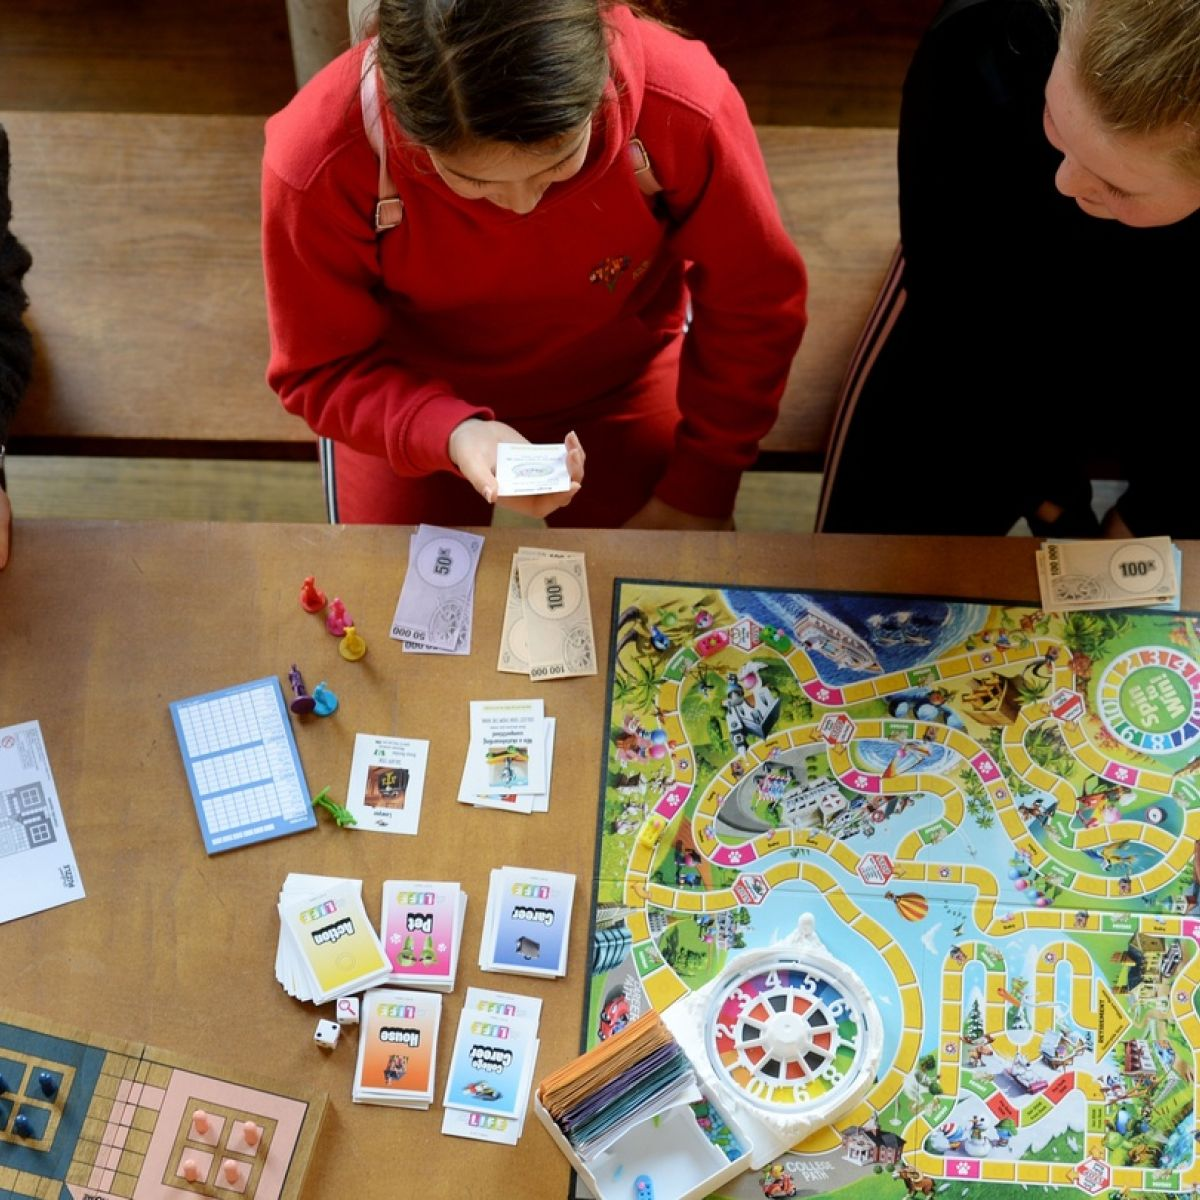 Put your game face on: the joy of playing classic board games